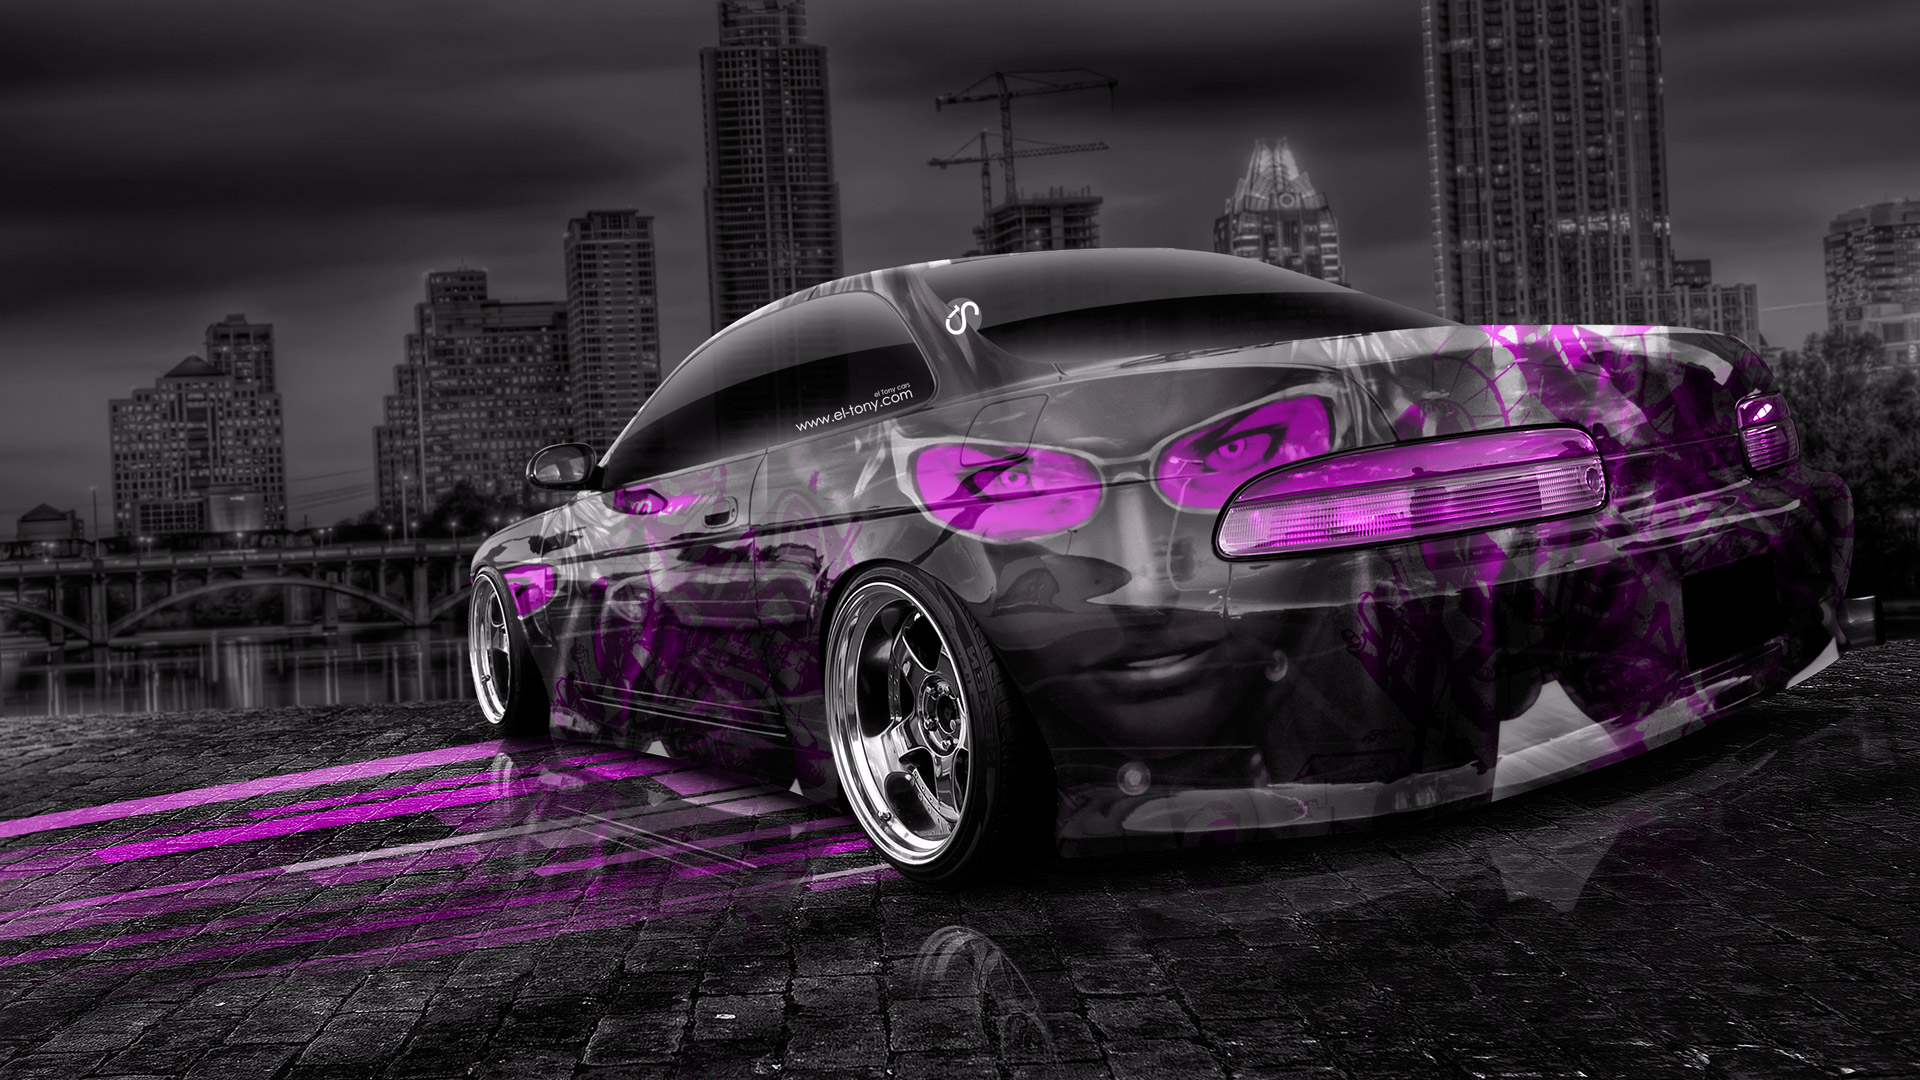 Toyota Soarer Jdm Anime Aerography City Car 2014 El Tony